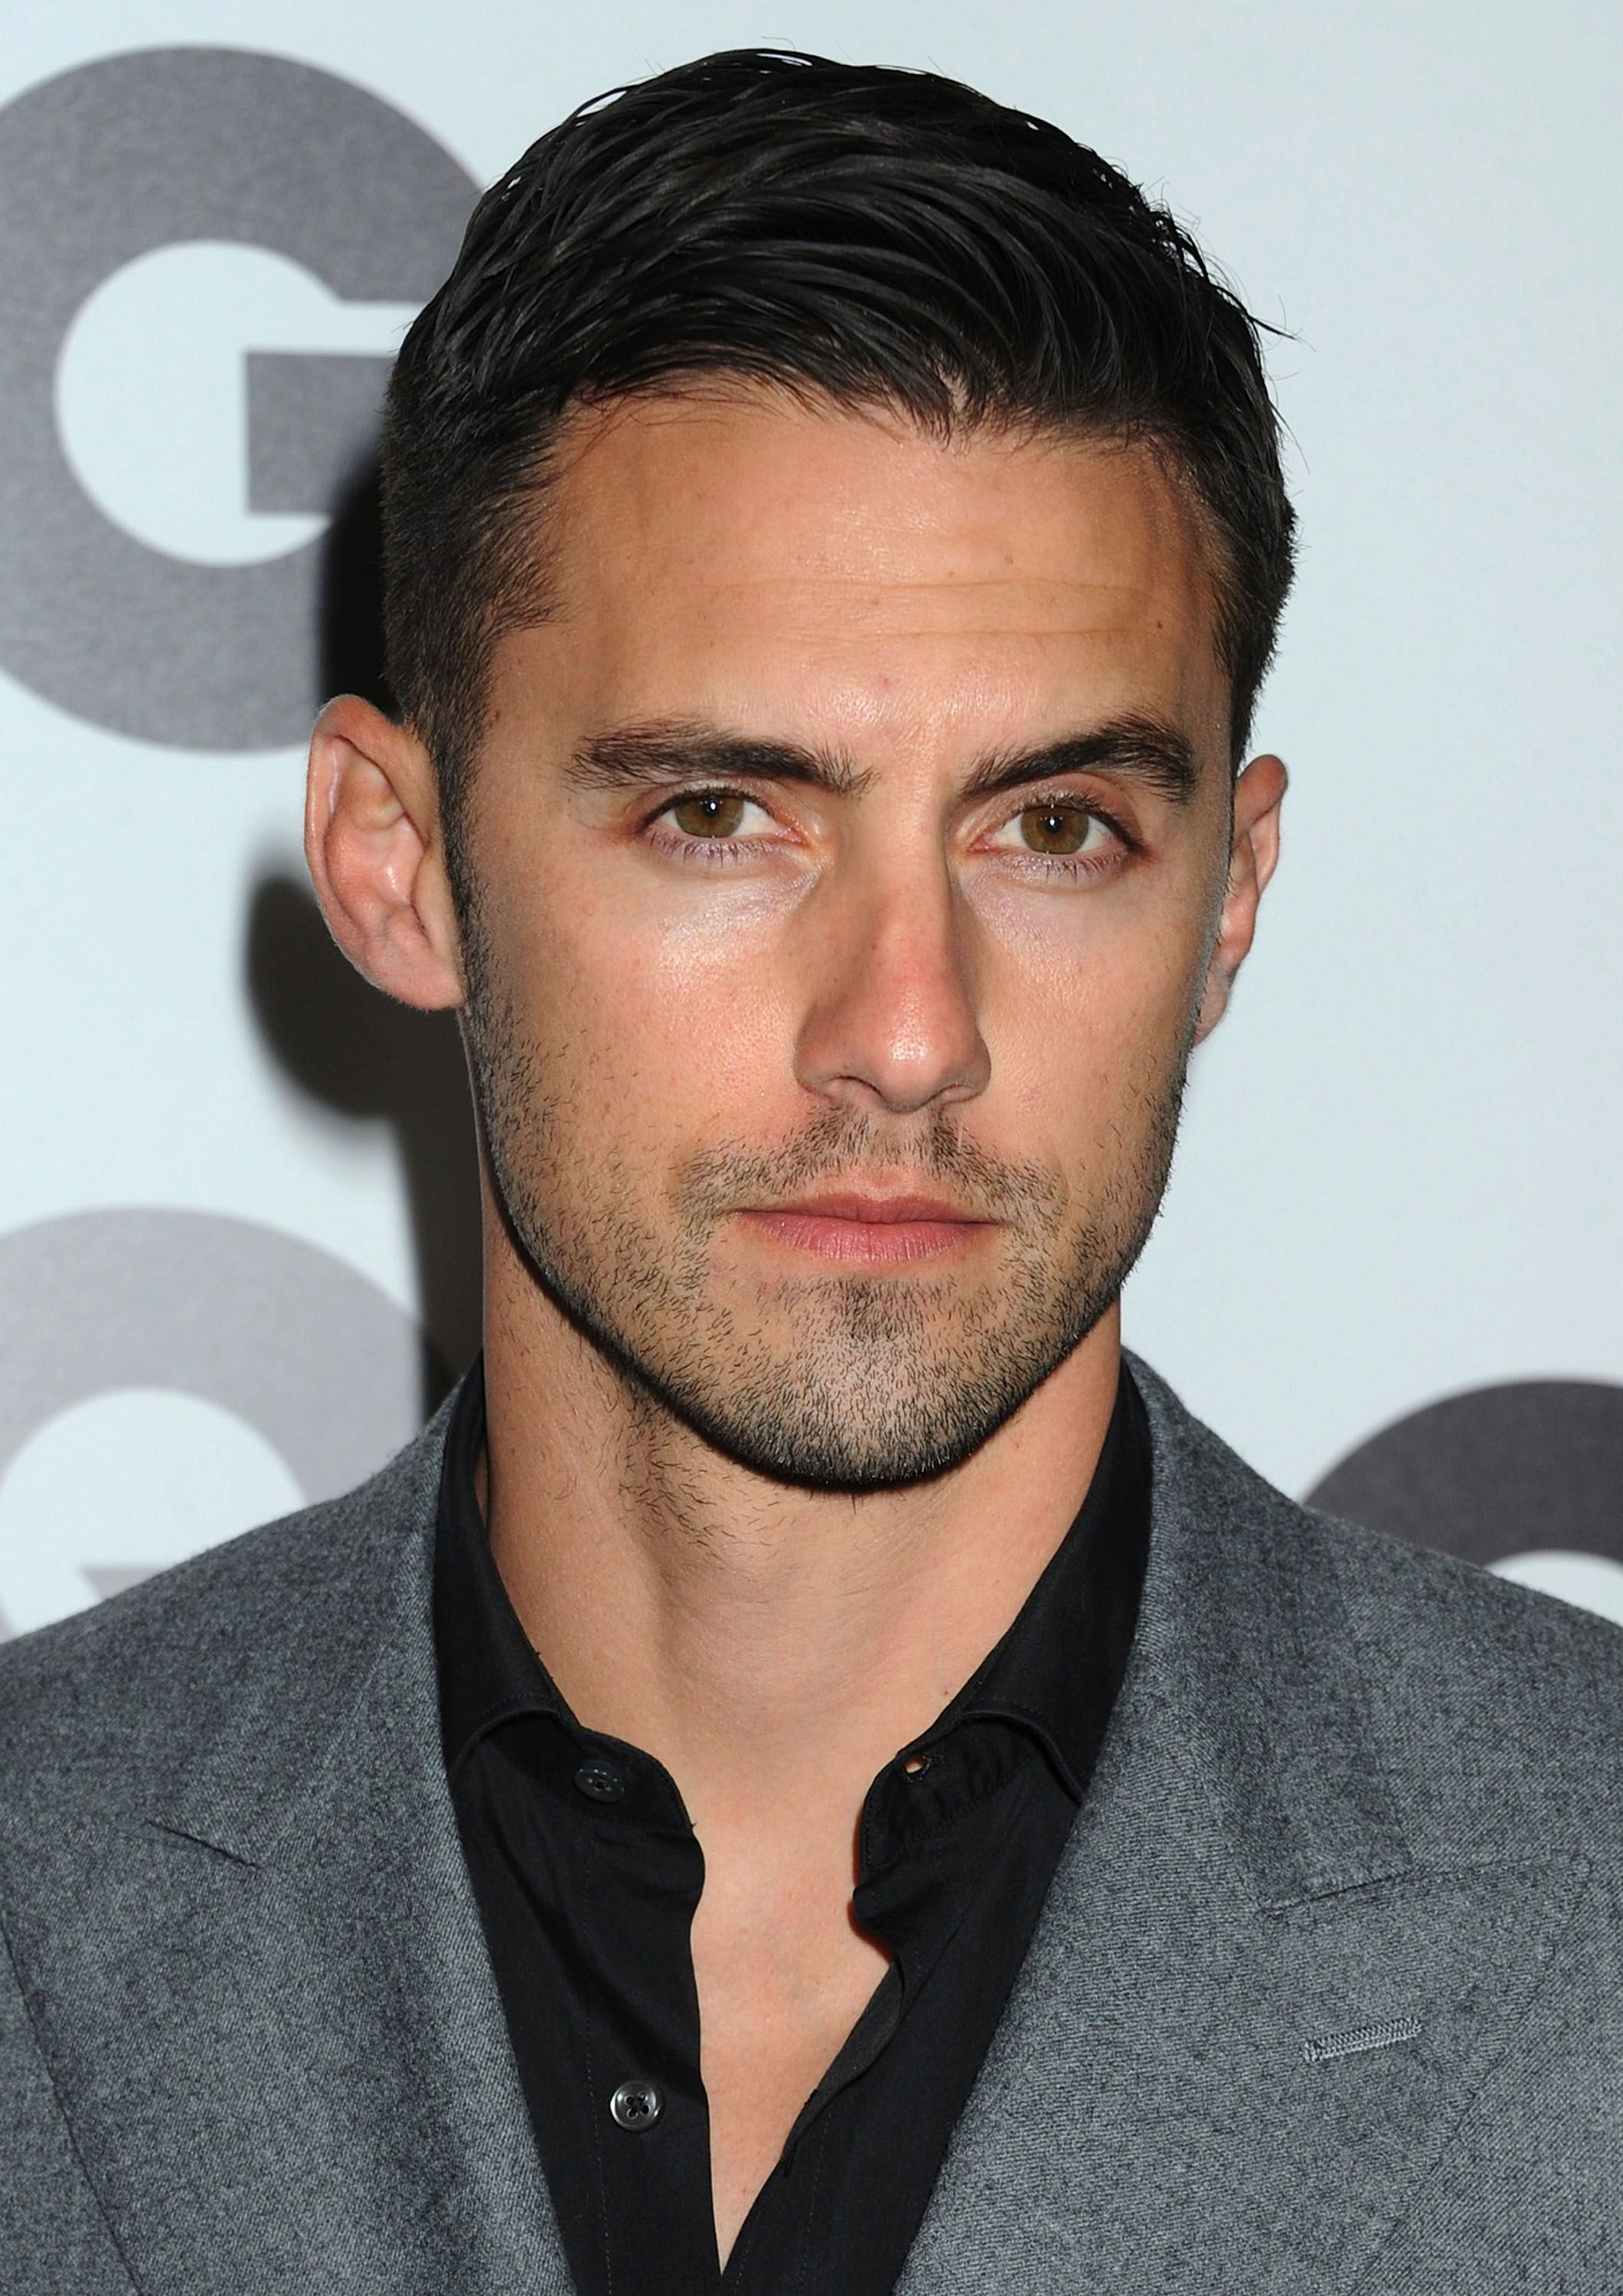 What Does Color Blindness Look Like Milo Ventimiglia 2018 Haircut Beard Eyes Weight